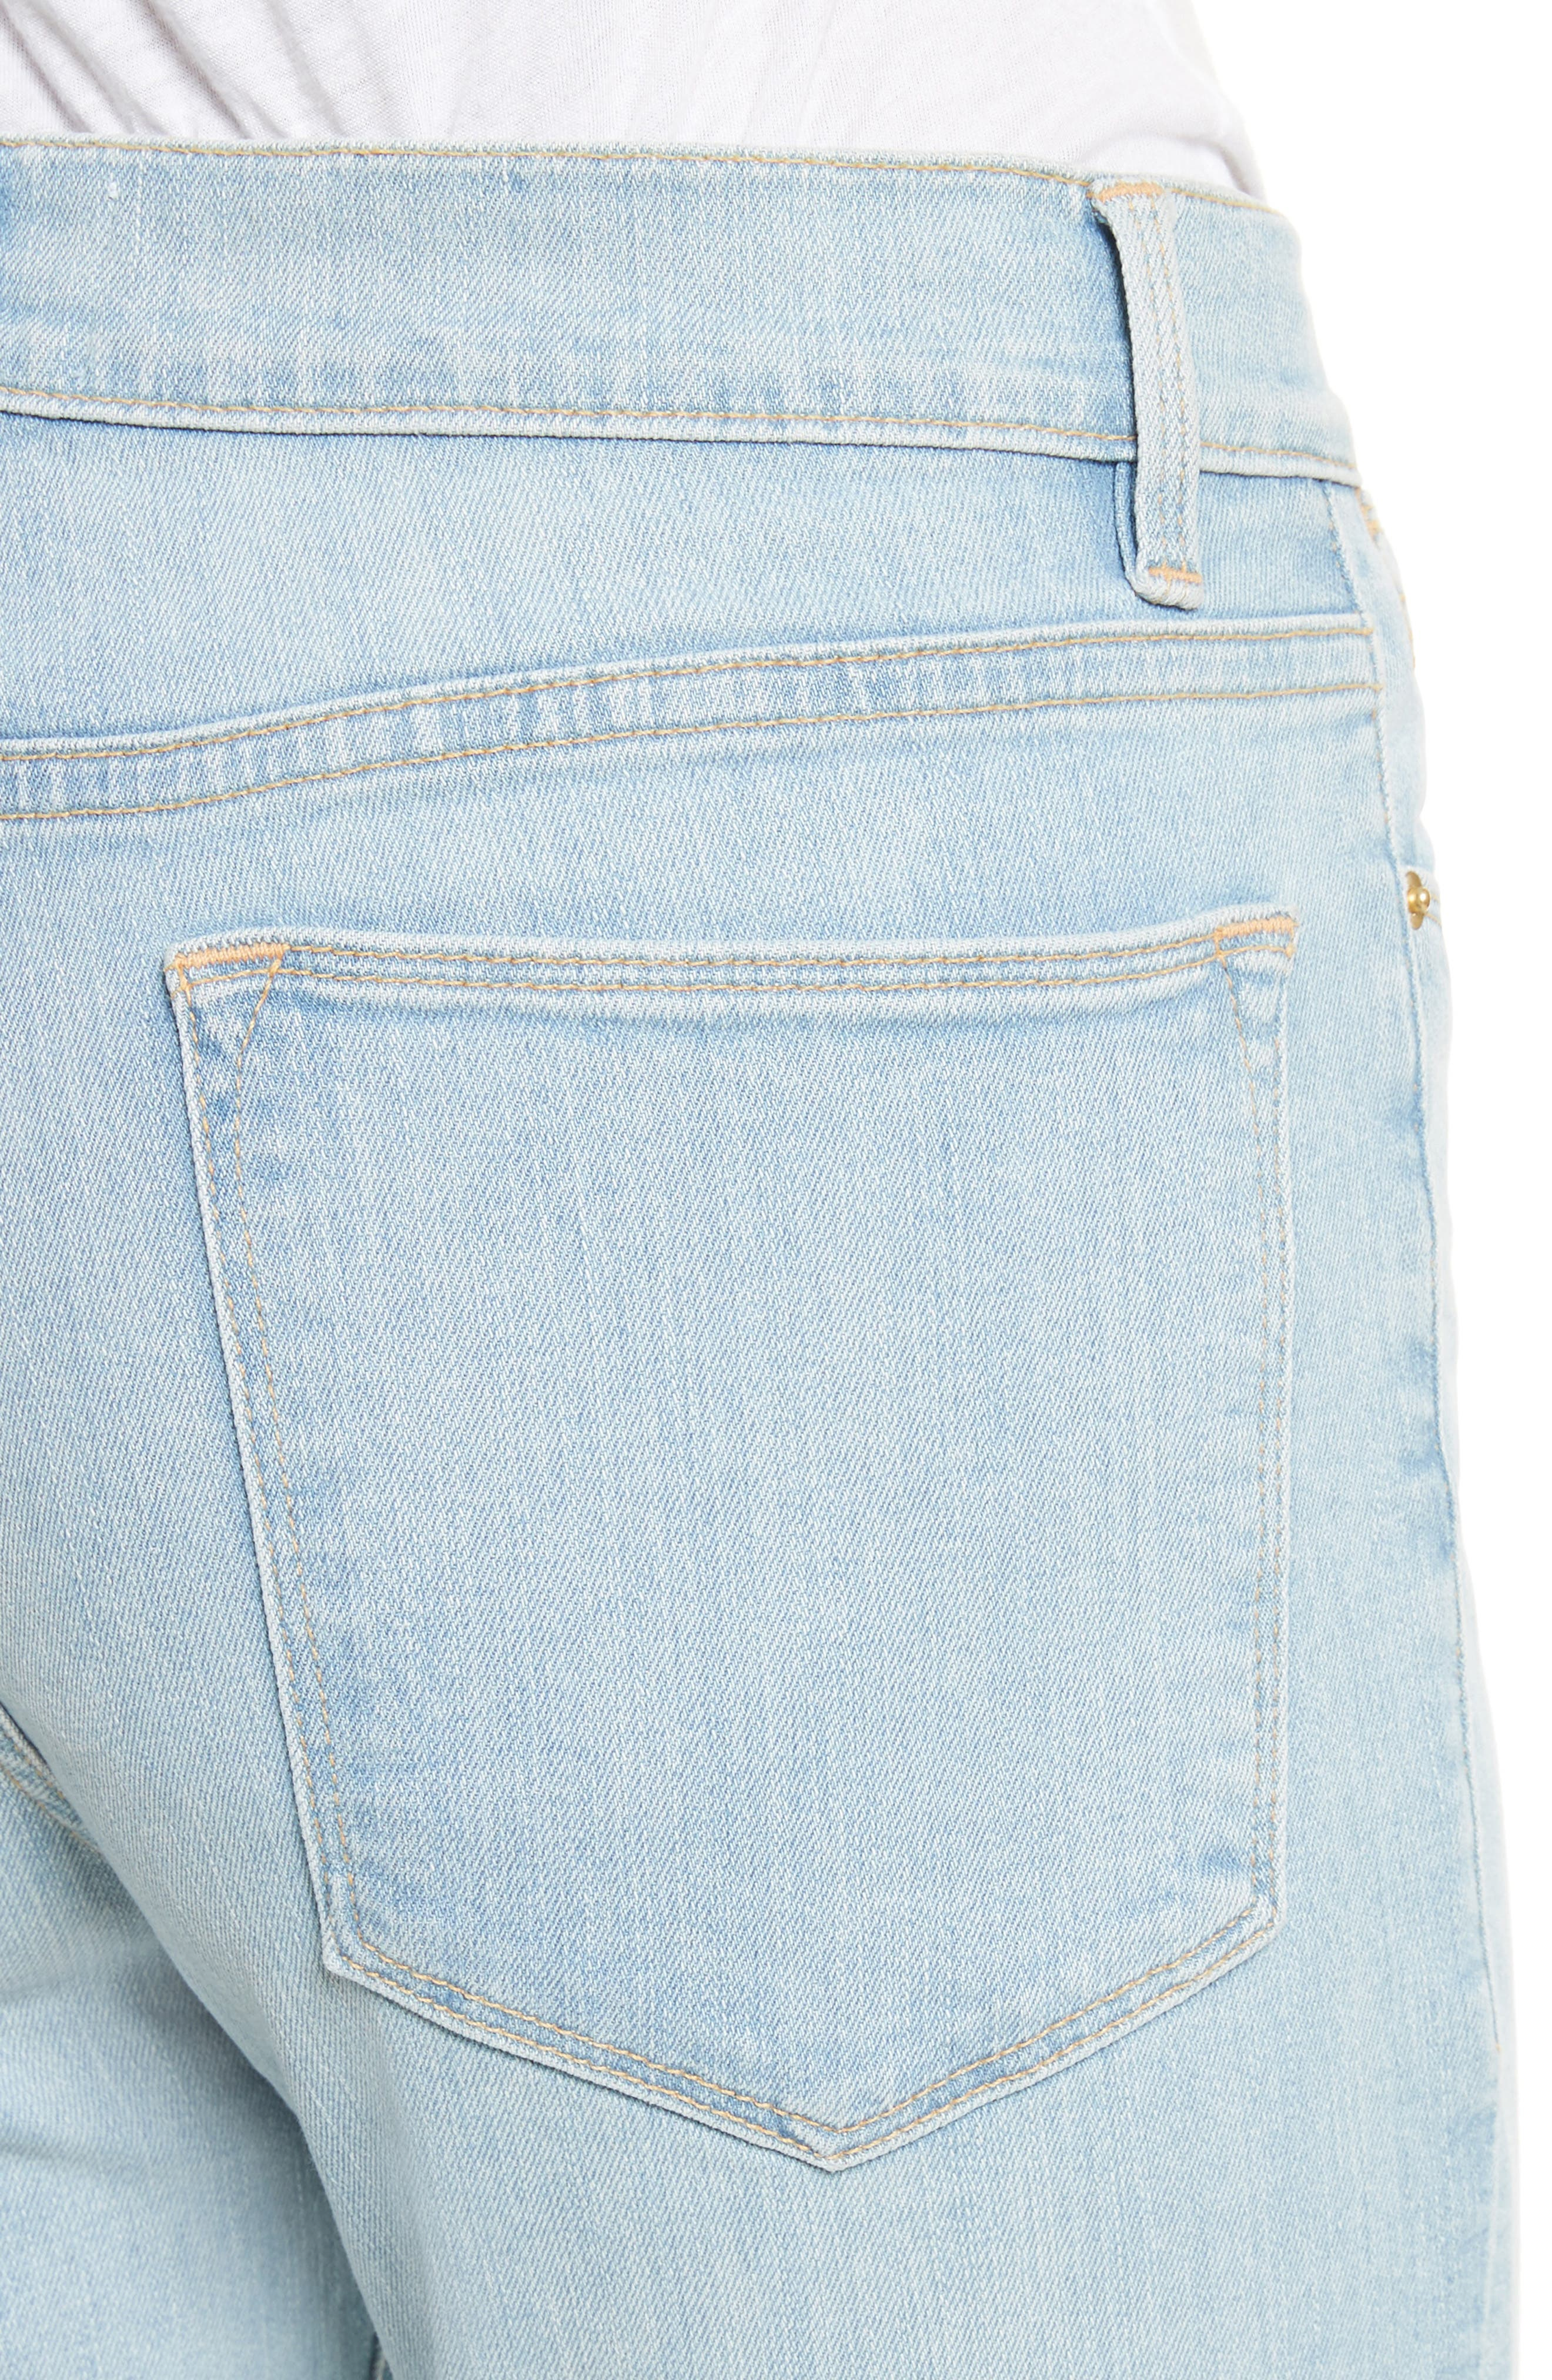 Le High Skinny Crop Jeans,                             Alternate thumbnail 4, color,